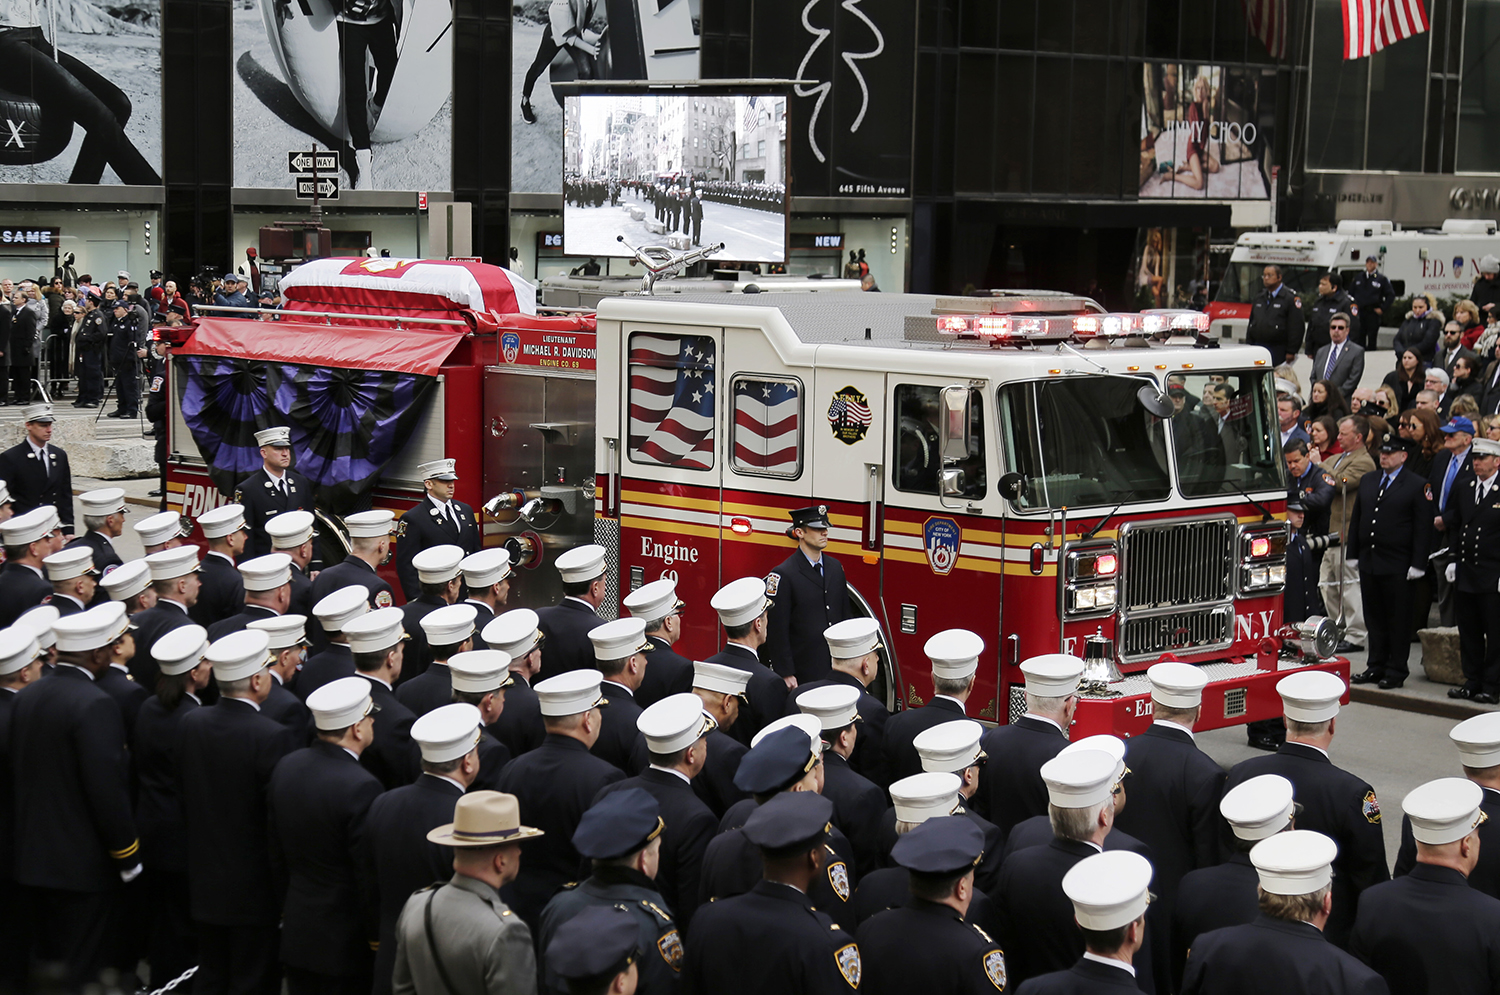 <div class='meta'><div class='origin-logo' data-origin='AP'></div><span class='caption-text' data-credit='Seth Wenig'>The body of firefighter Michael Davidson is brought to St. Patrick's Cathedral on a firetruck.</span></div>